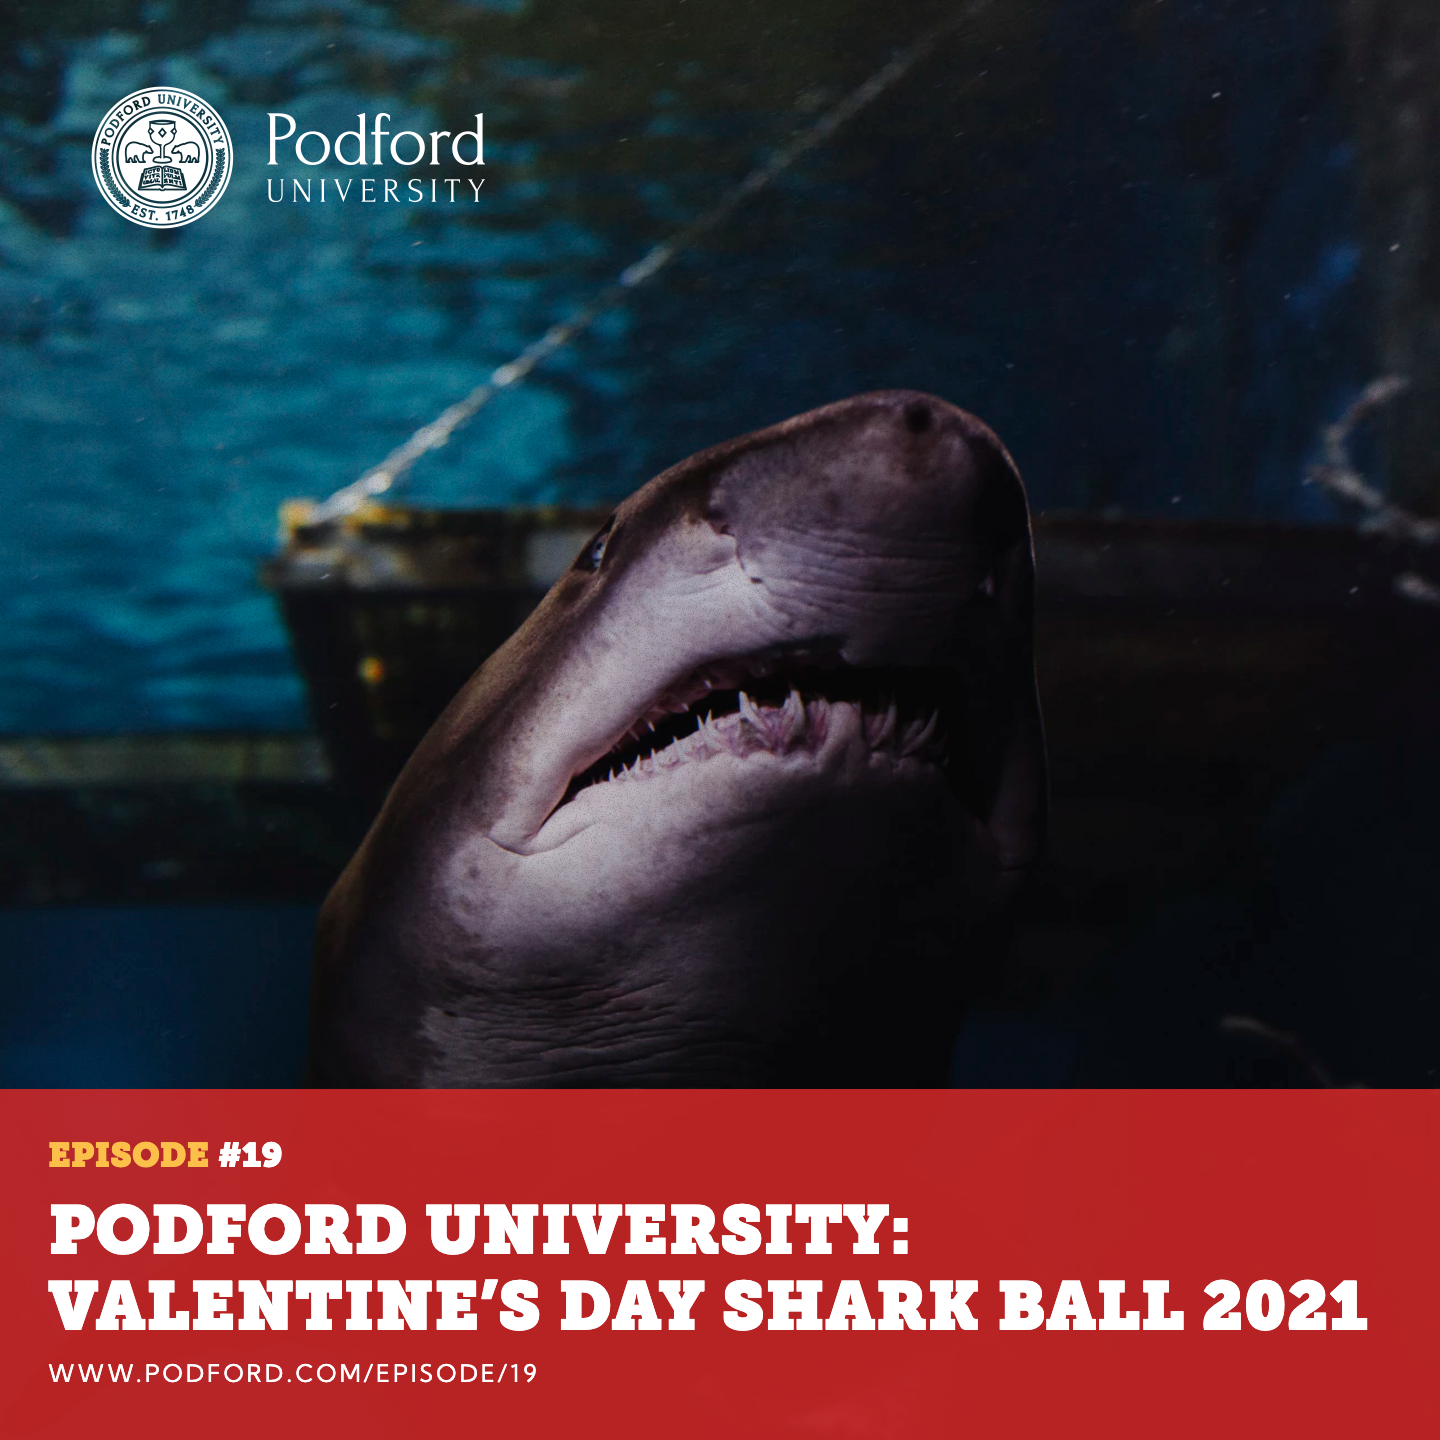 Podford University: Valentine's Day Shark Ball 2021